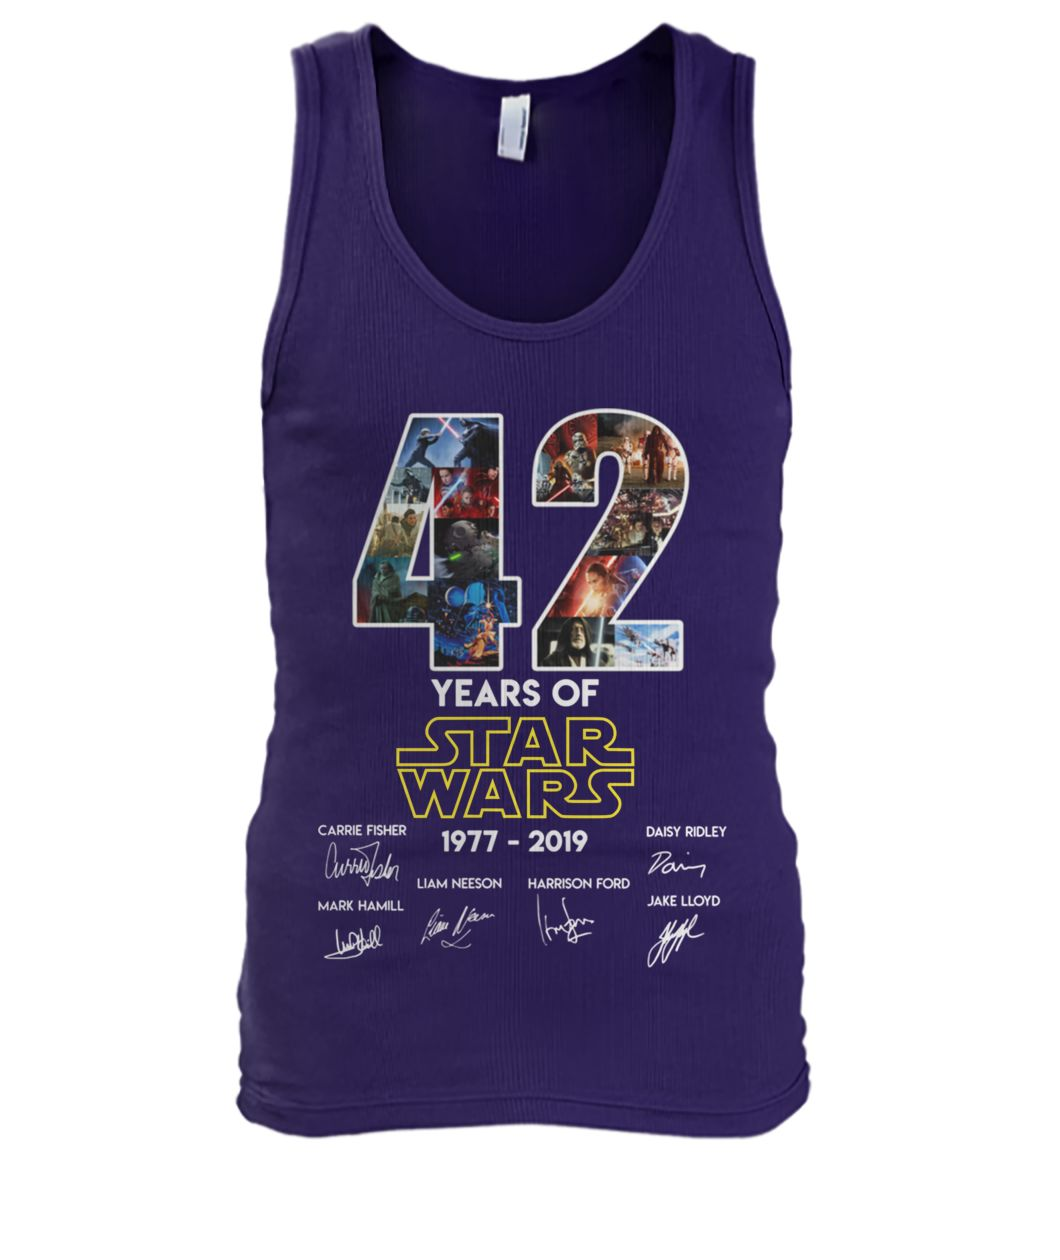 42 years of star wars 1977-2019 signatures men's tank top